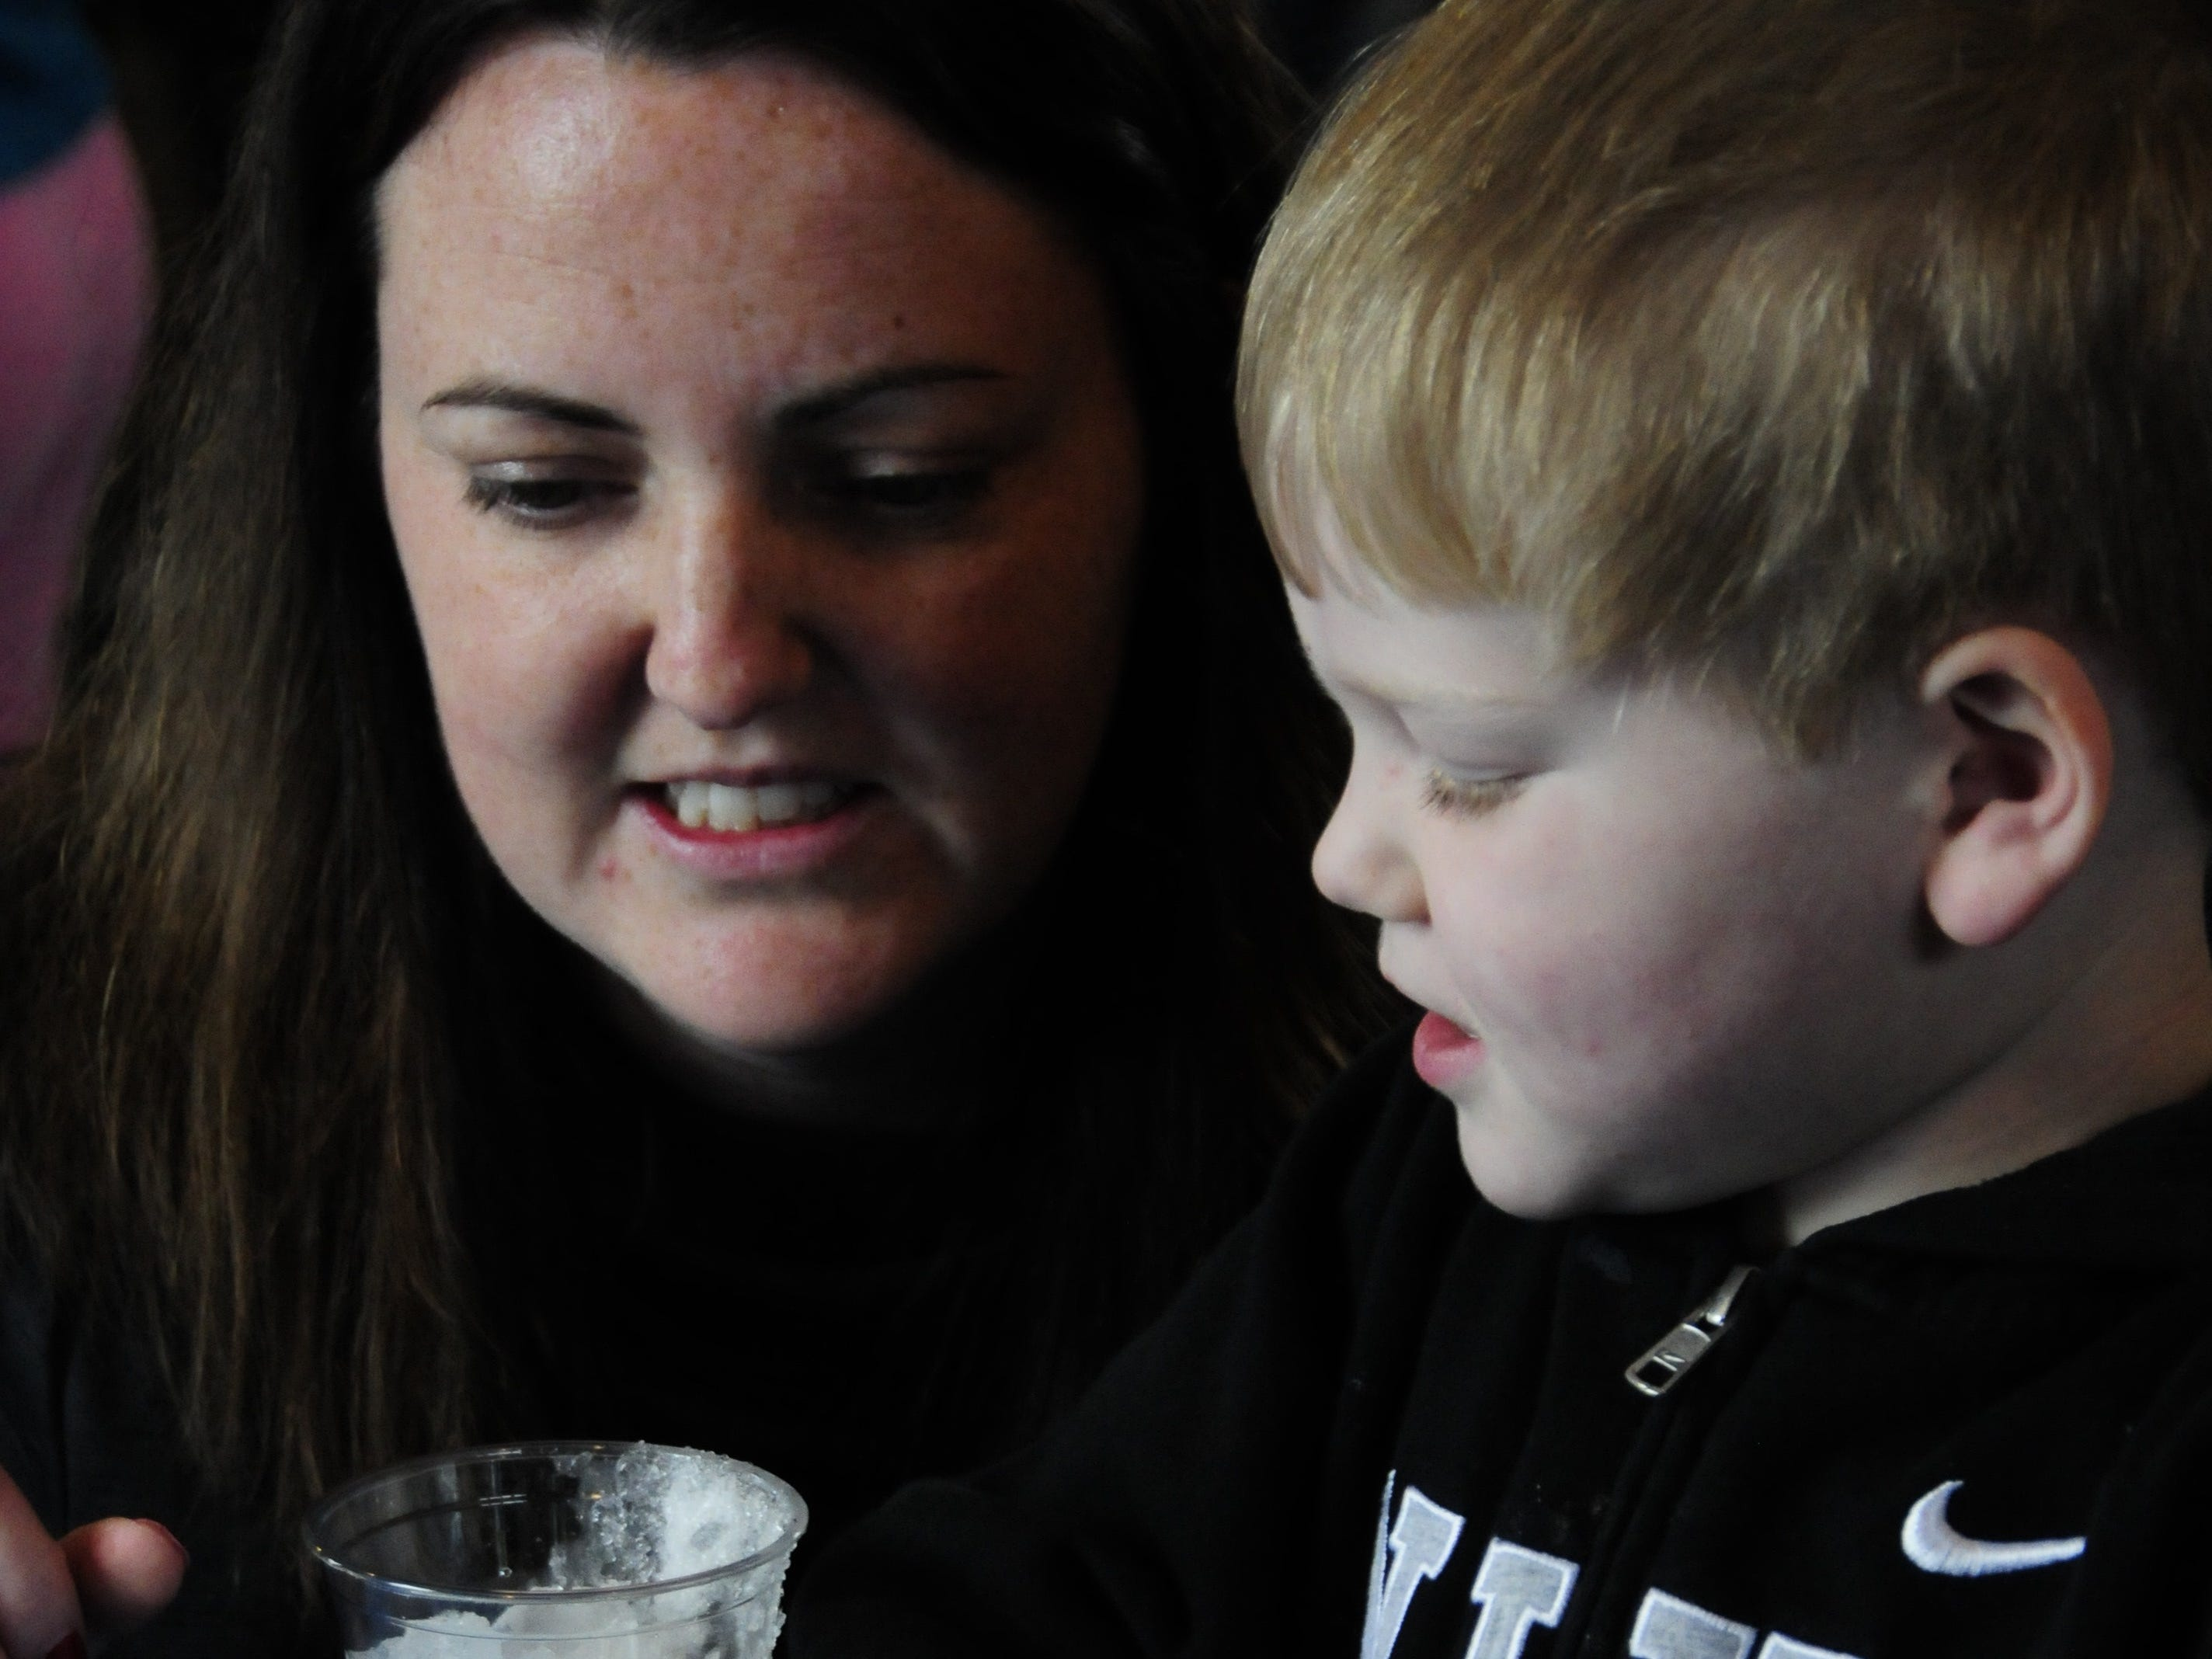 Crystal Ball, of Yale, helps her son, Derek, with an experiment using ice at the Wacky Winter Science event at Fort Gratiot Light Station County Park.